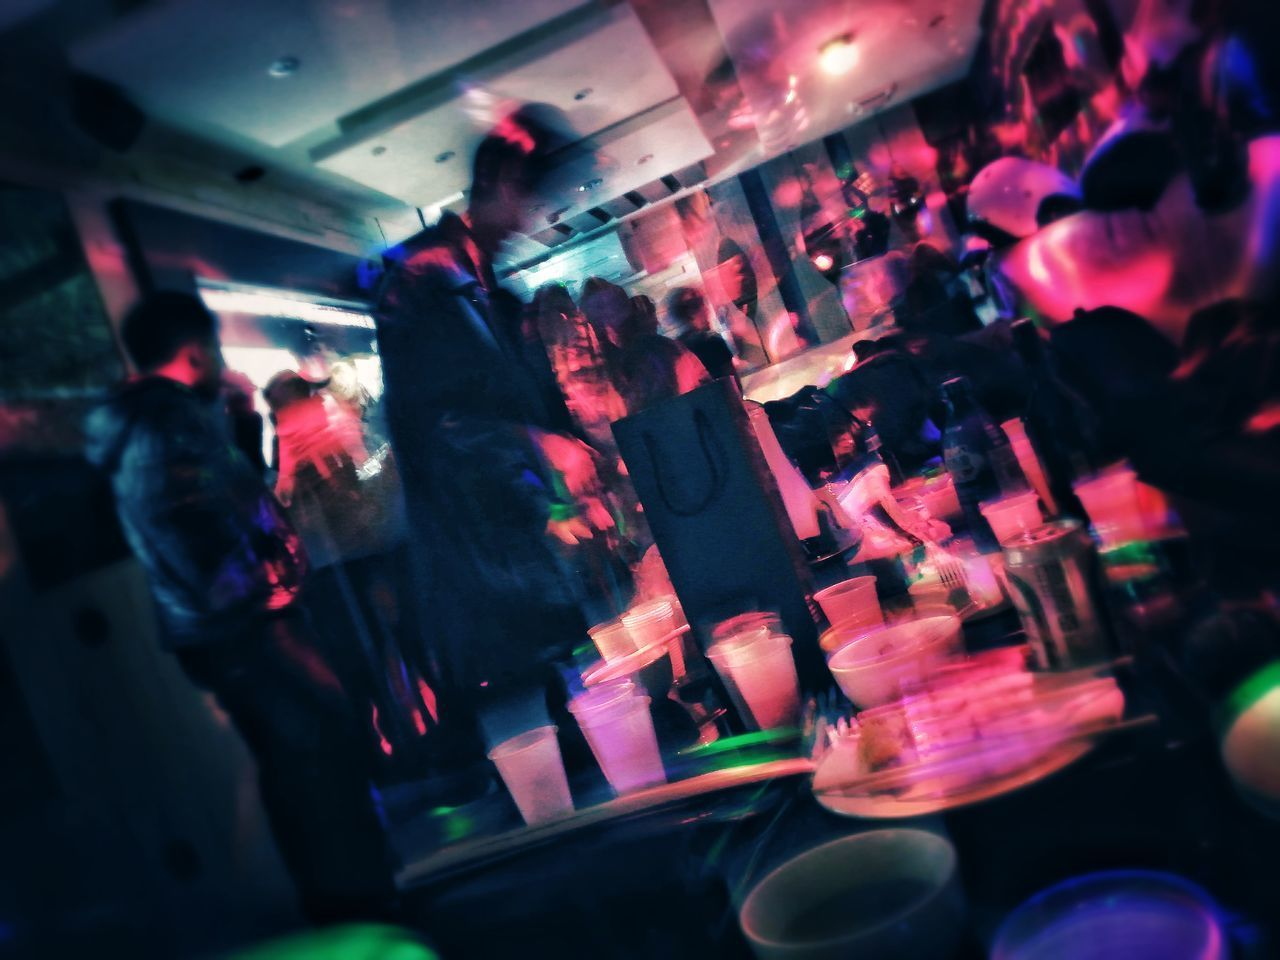 indoors, retail, night, real people, large group of objects, multi colored, illuminated, close-up